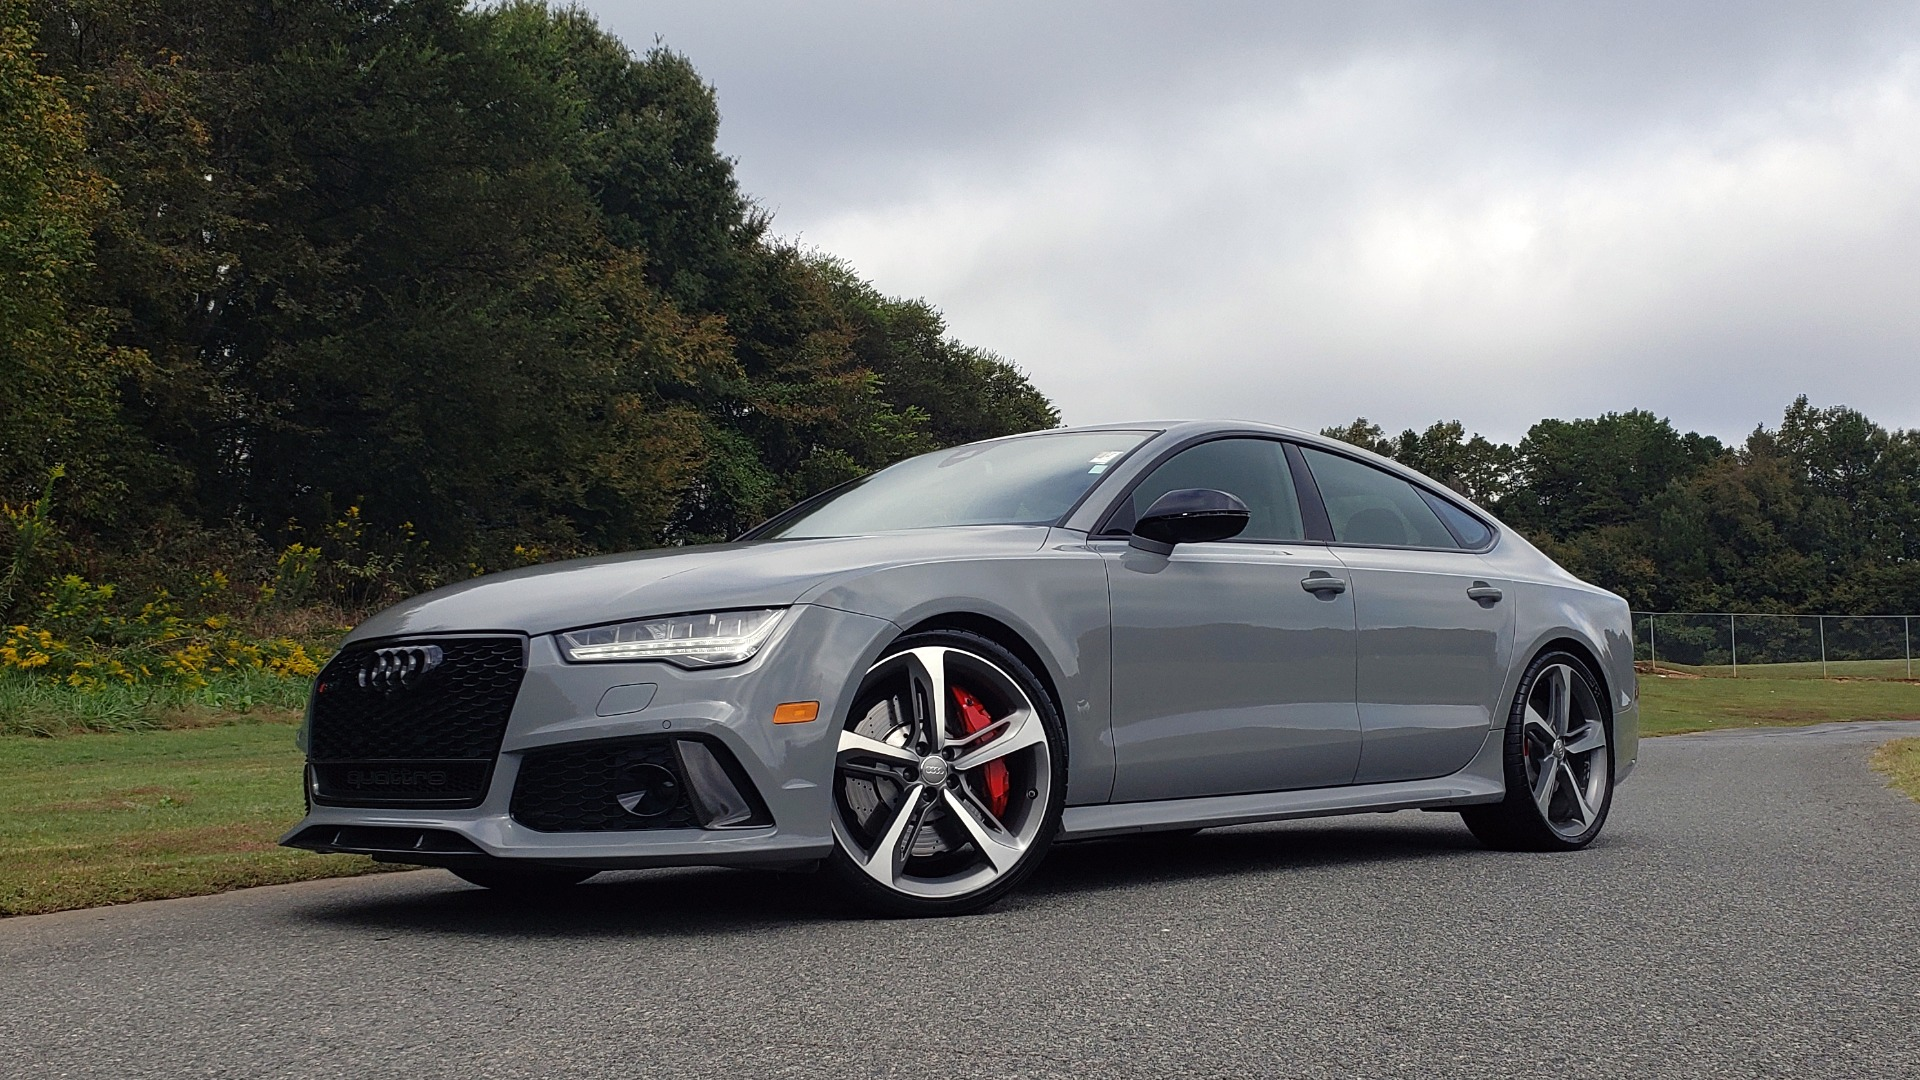 Used 2018 Audi RS 7 4.0T TIPTRONIC / CARBON OPTIC / DRVR ASST / NAV / REARVIEW / 750HP+ for sale Sold at Formula Imports in Charlotte NC 28227 1